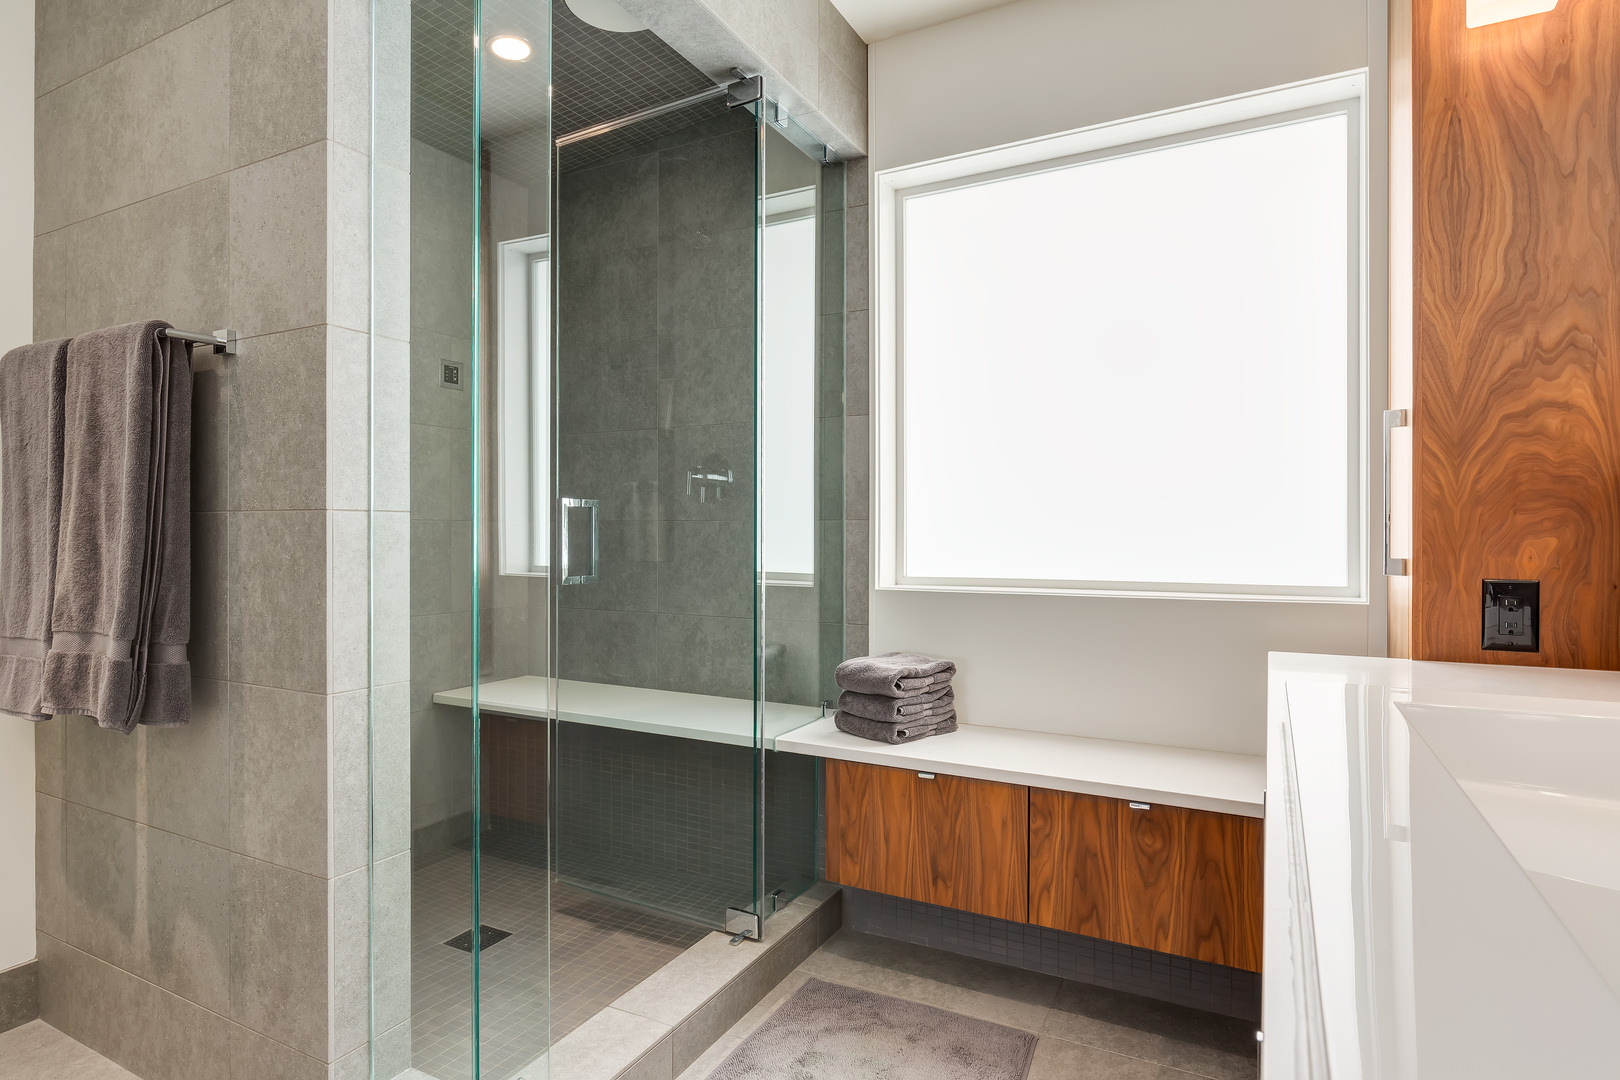 A bright and spacious bathroom is accented by natural lighting.